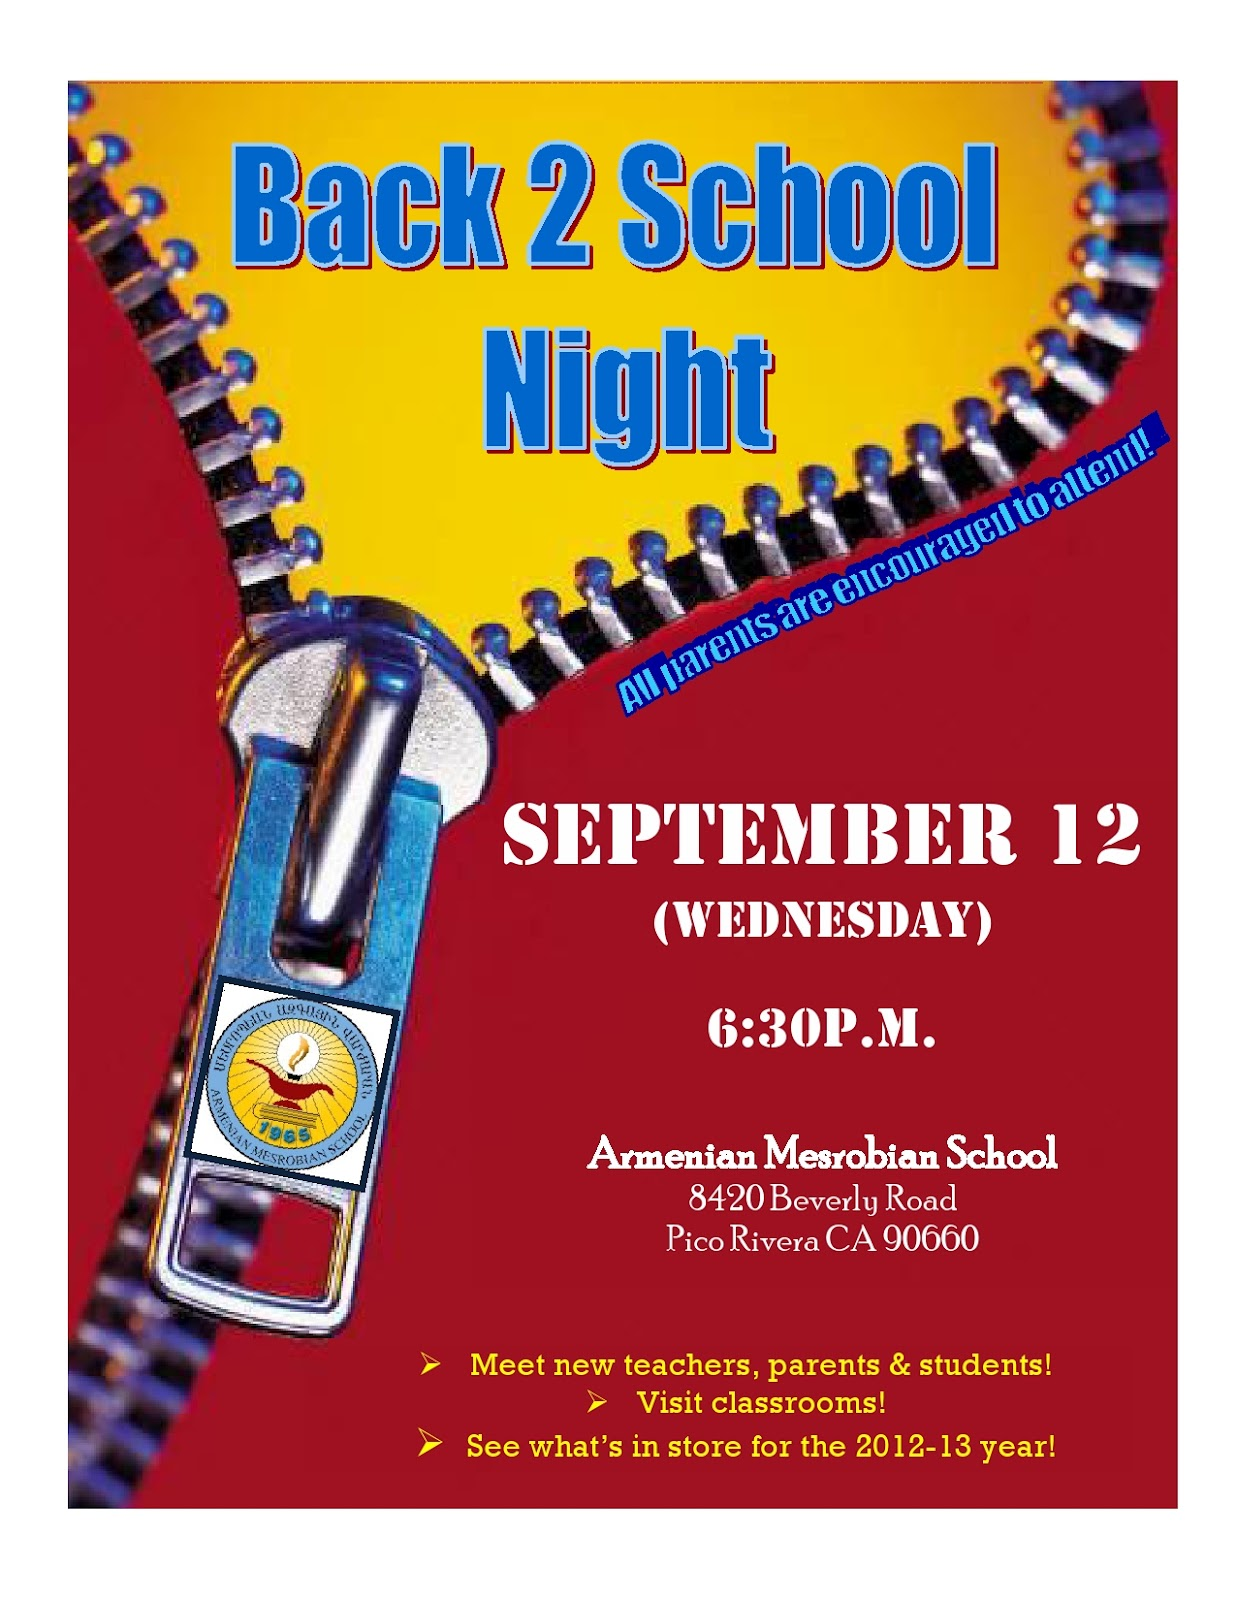 Back To School Night Flyer Antaexpocoaching